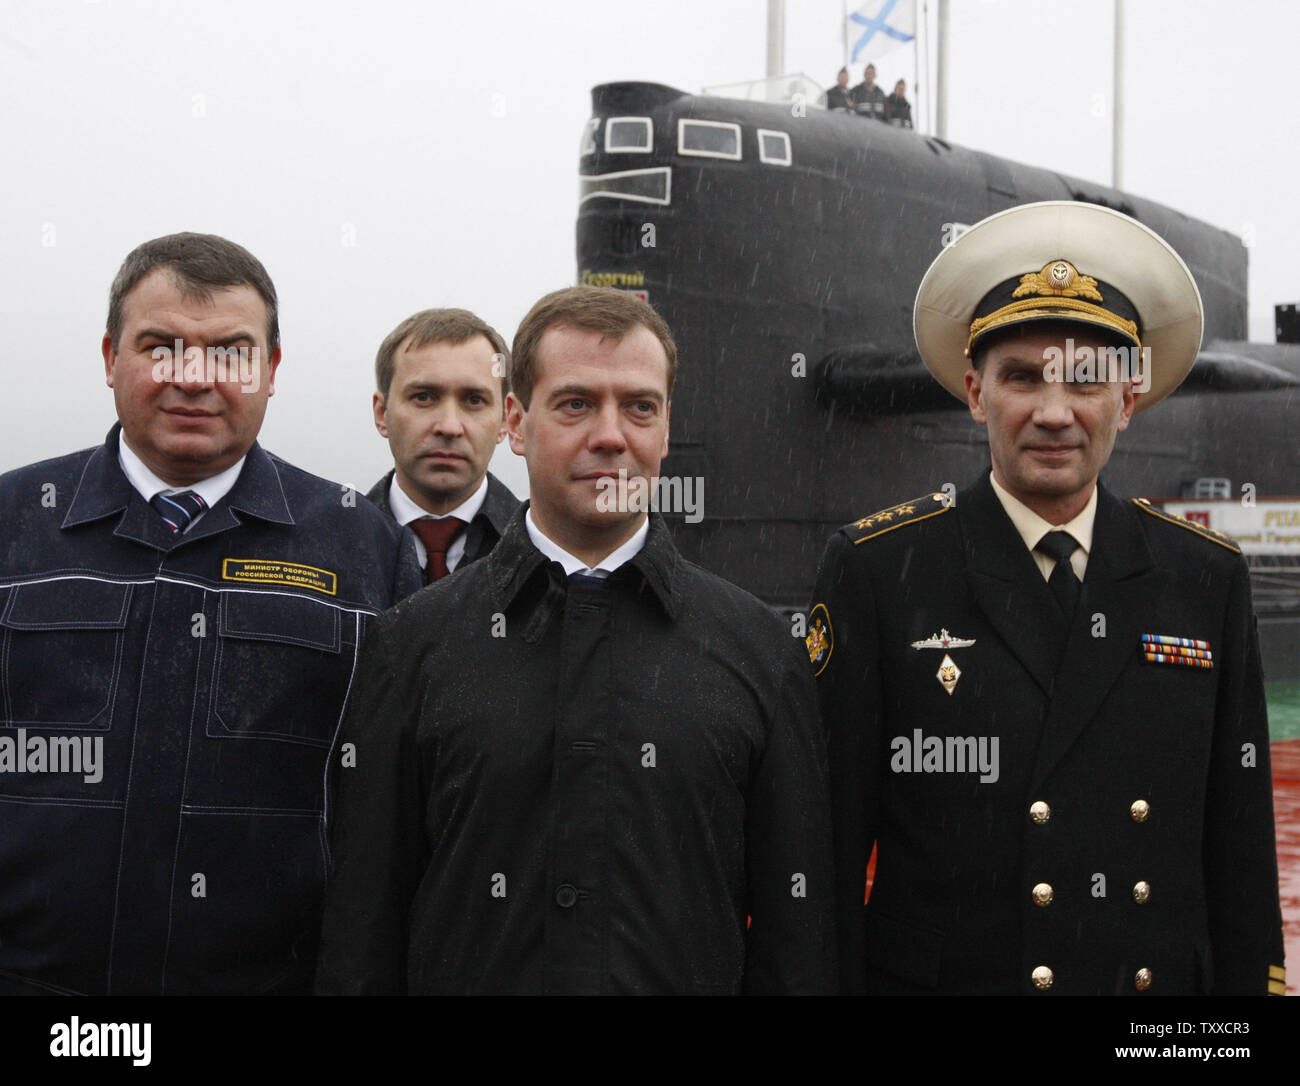 President Dmitry Medvedev (C) with Defense Minister Anatoly Serdyukov (L) and Naval Commander Adm. Vladimir Vysotsky visit the 'St. George the Victor' nuclear powered submarine at the Russian Pacific Fleet submarine base at Krasheninnikov Harbor on the Kamchatka Peninsula in the Russian Far East on September 25, 2008. (UPI Photo/Anatoli Zhdanov) - Stock Image